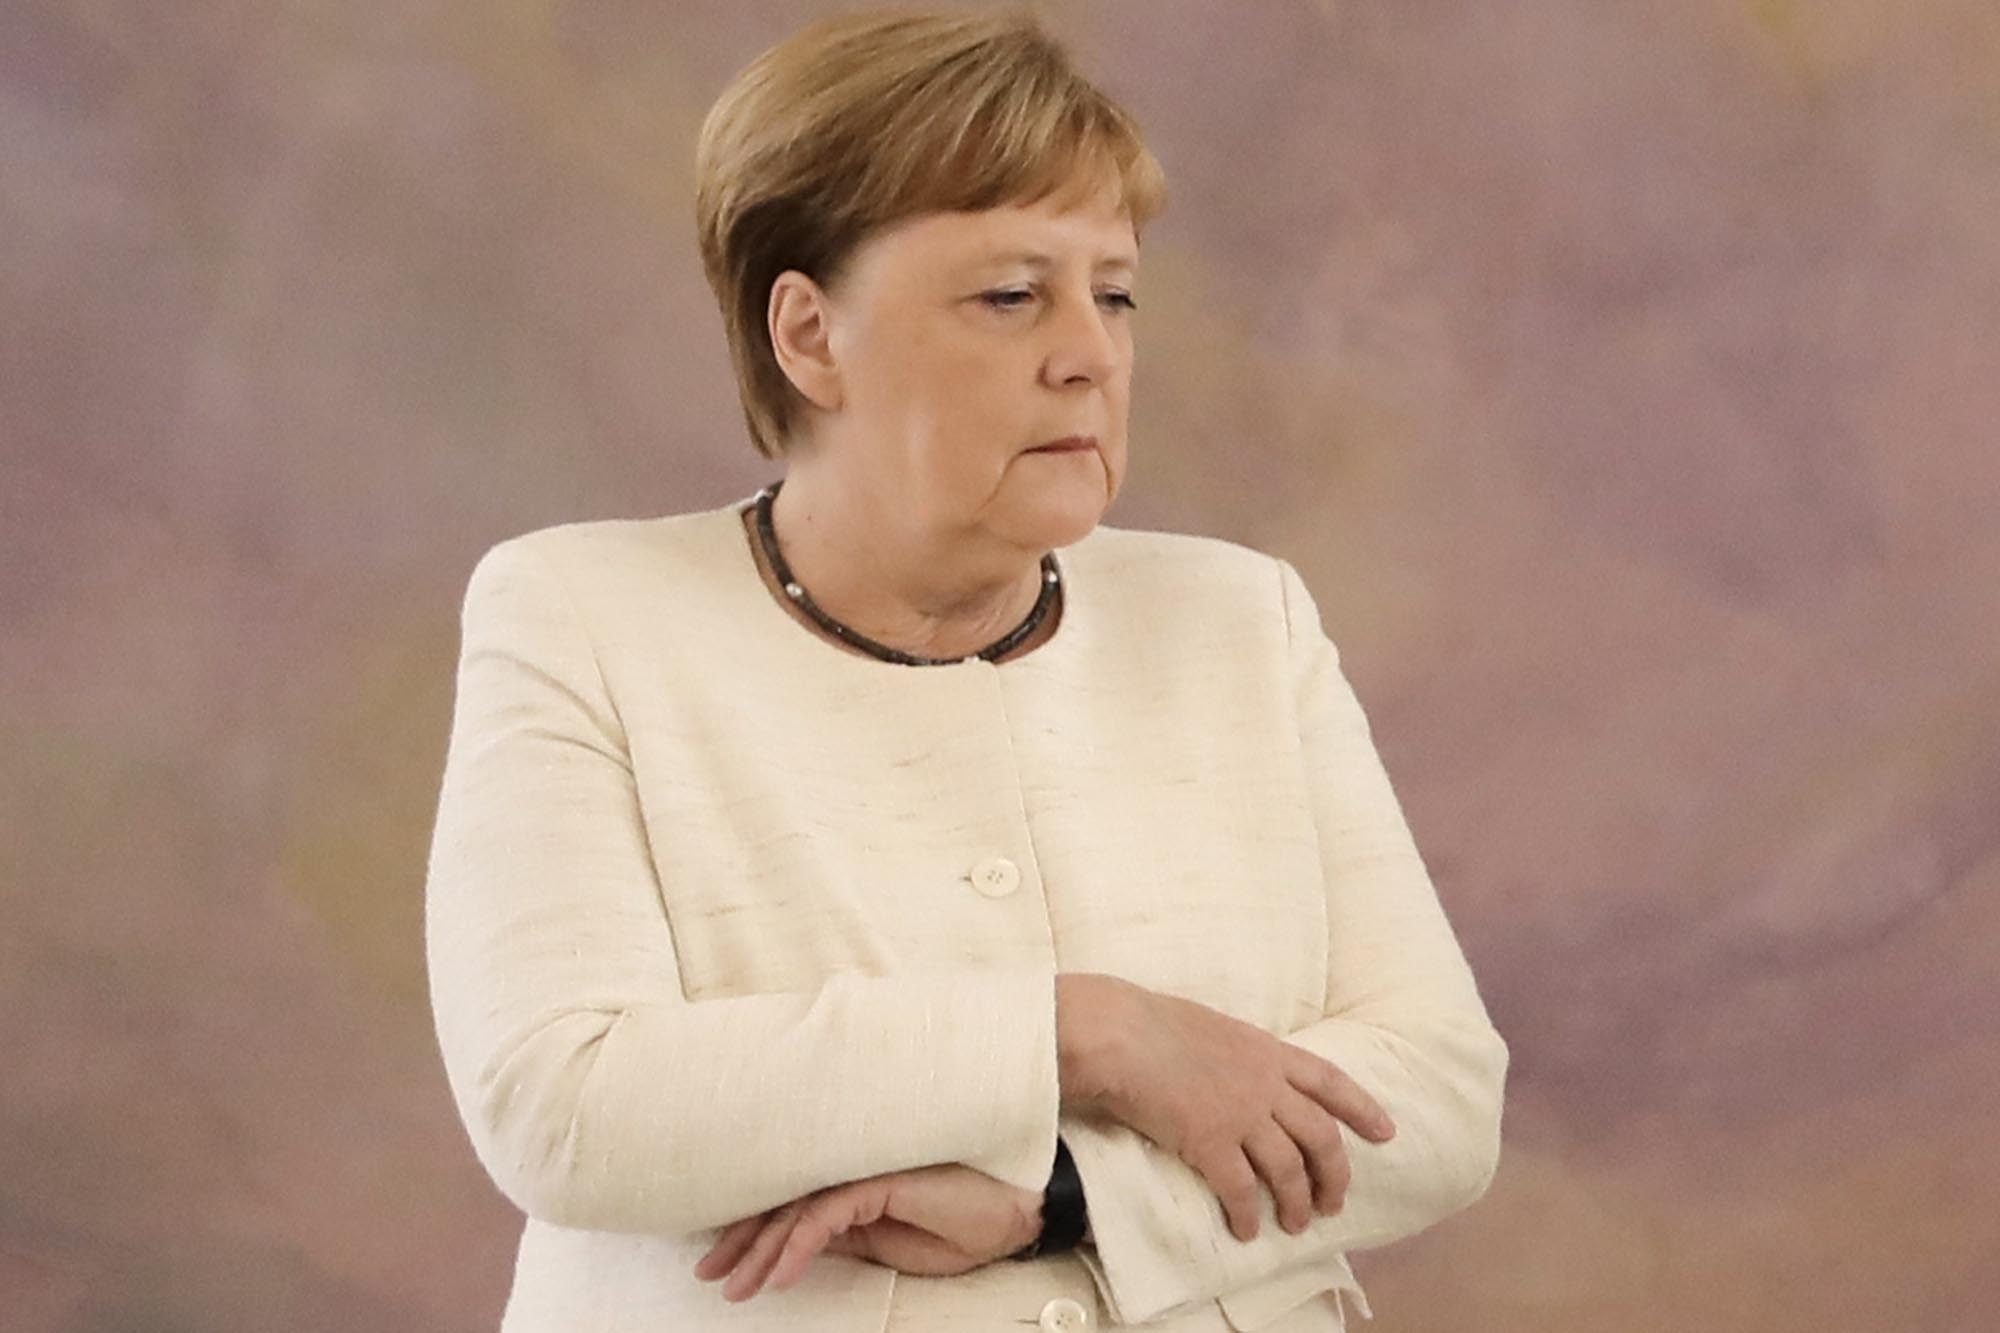 Germany S Angela Merkel Renews Health Concerns With Second Shaking Incident